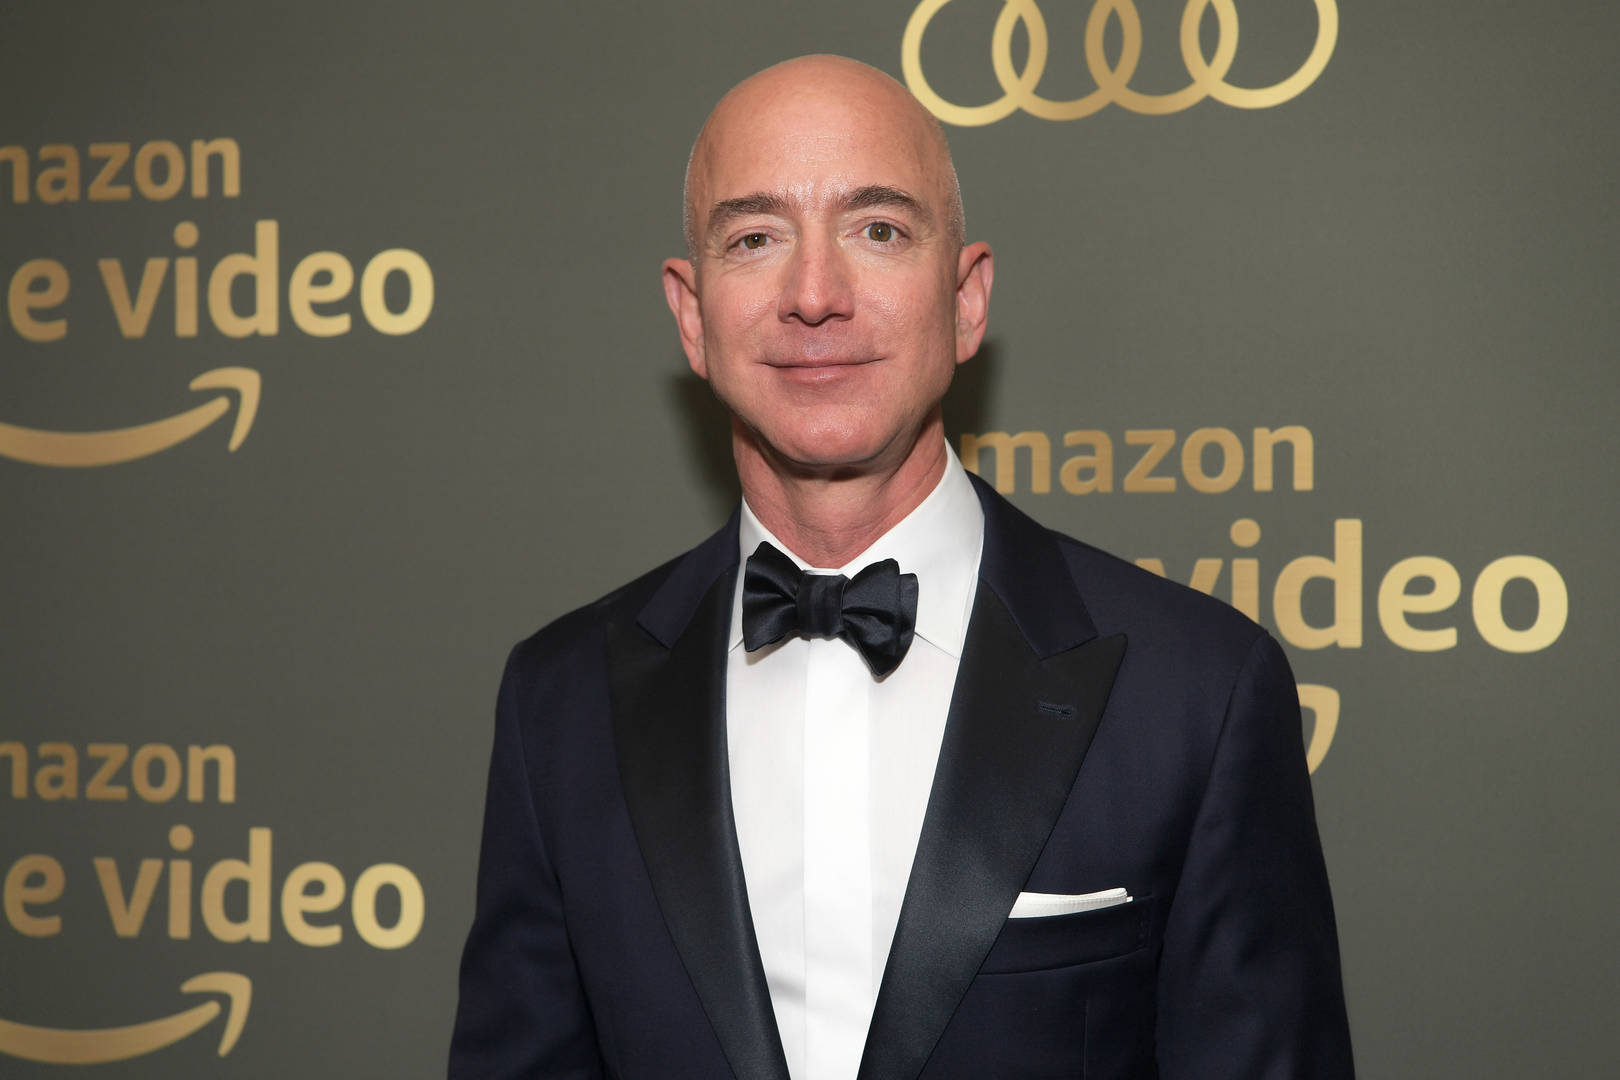 jeff bezos wealth